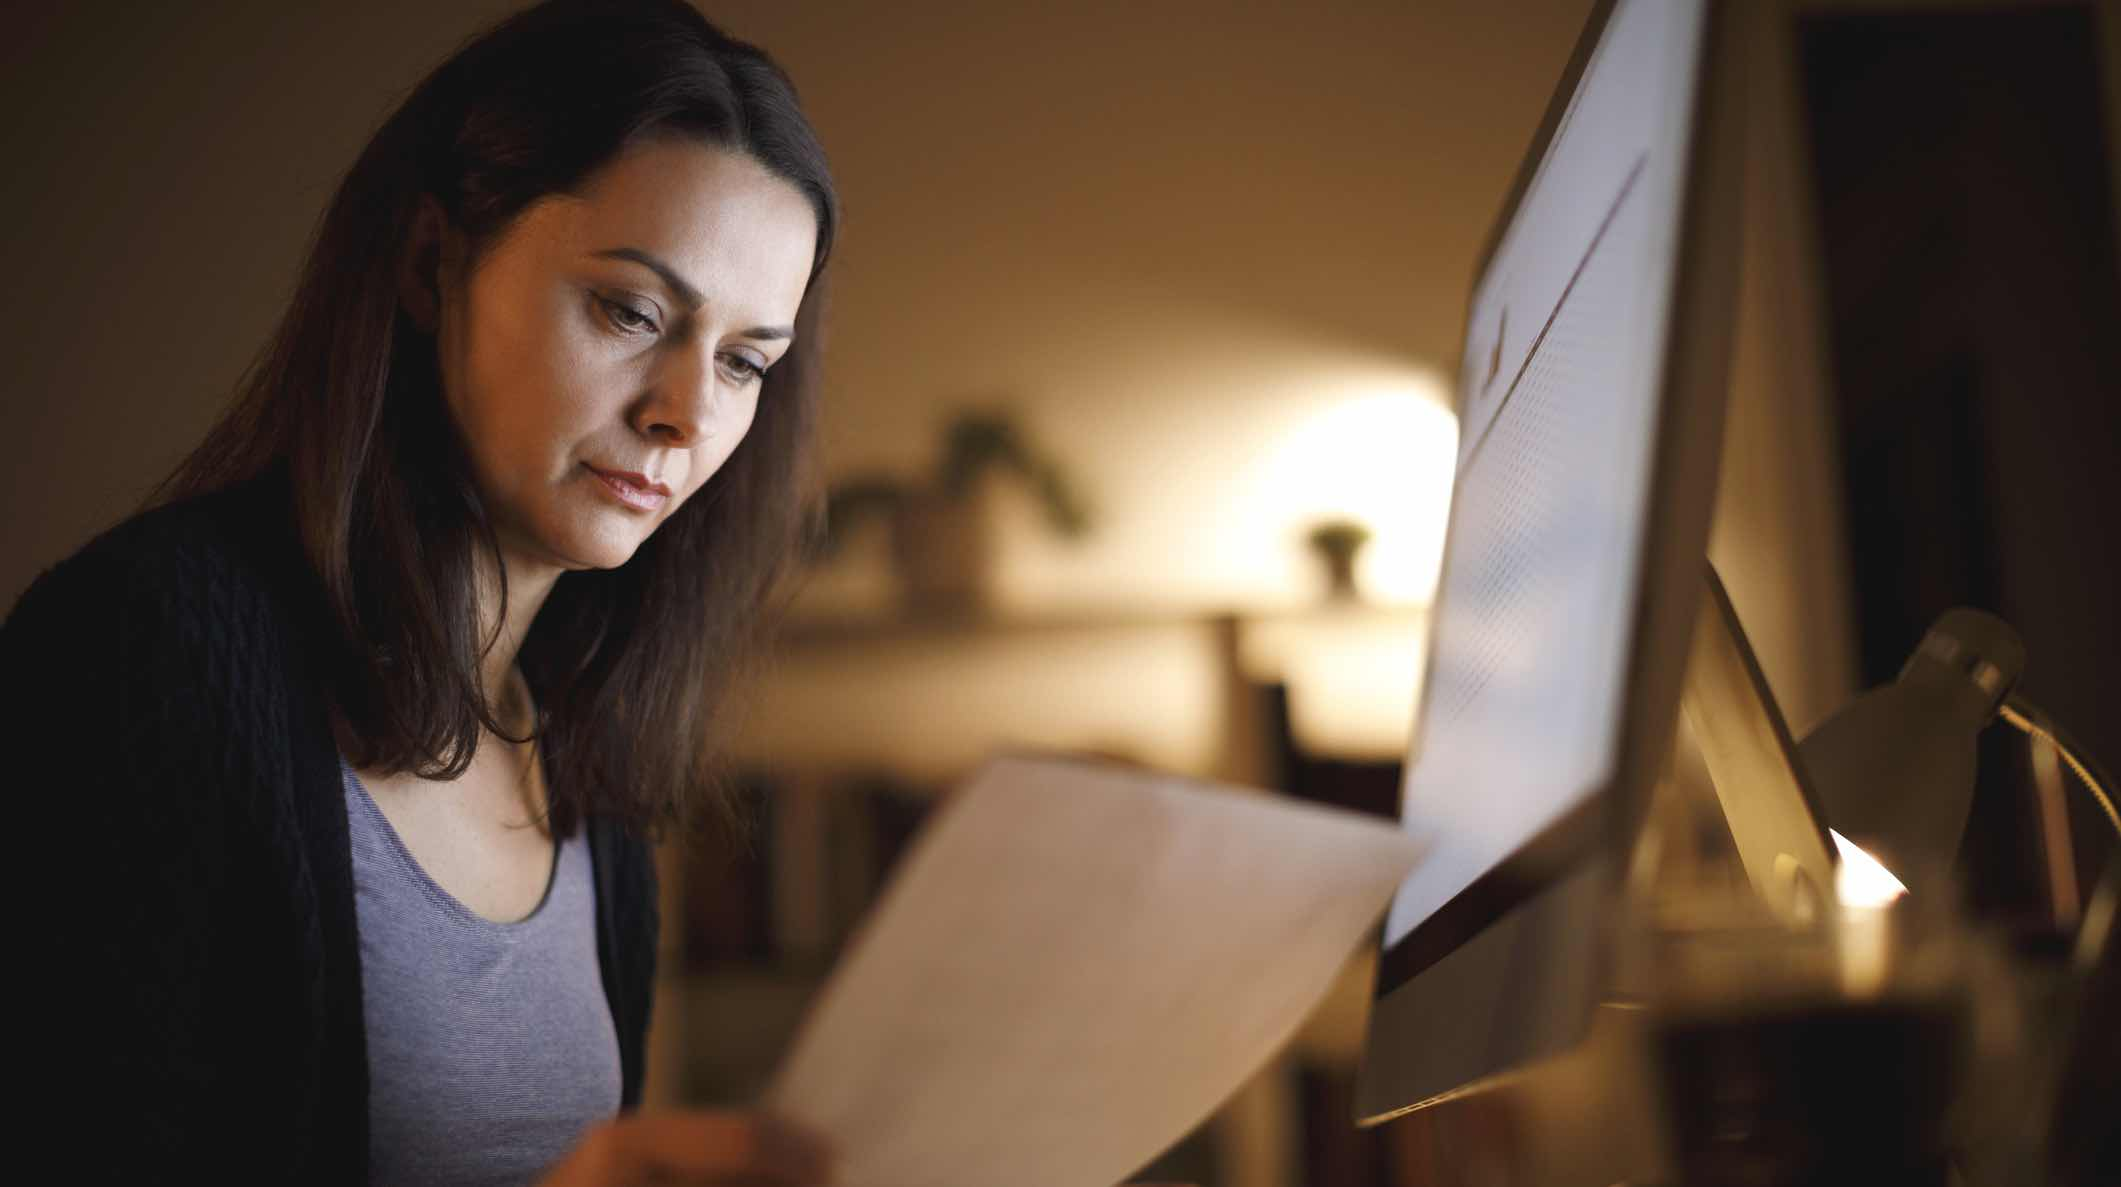 Woman checking bills, worried about early release of super